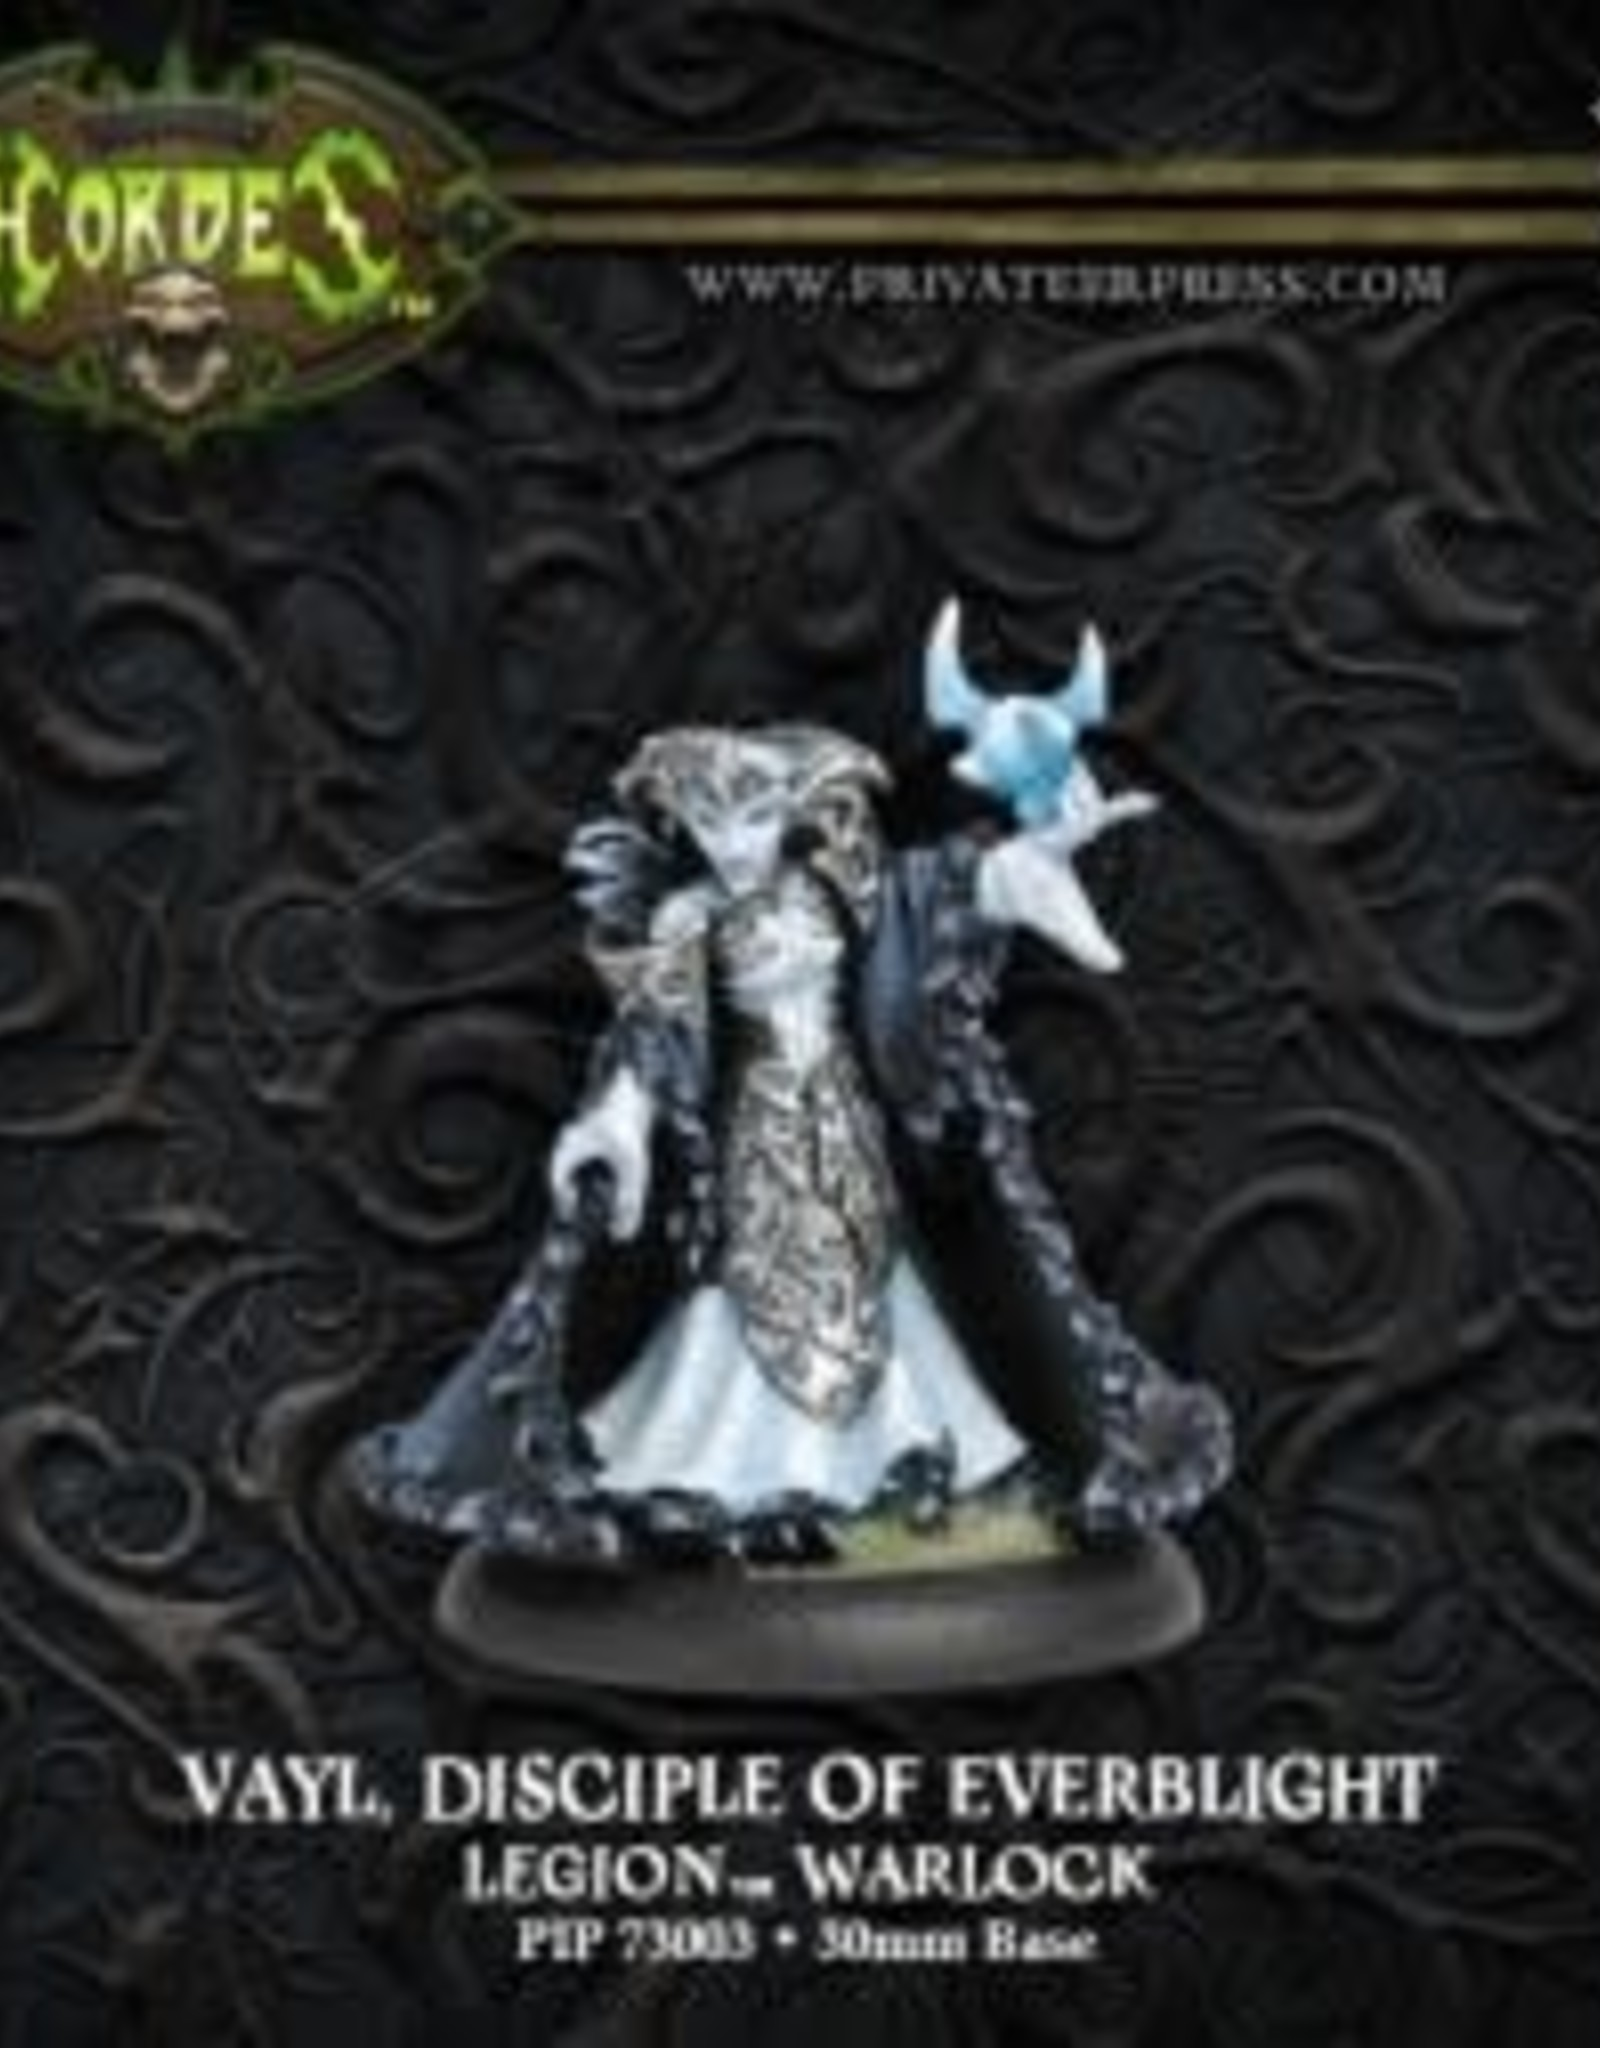 Hordes Everblight - Vayl Disciple of Everblight